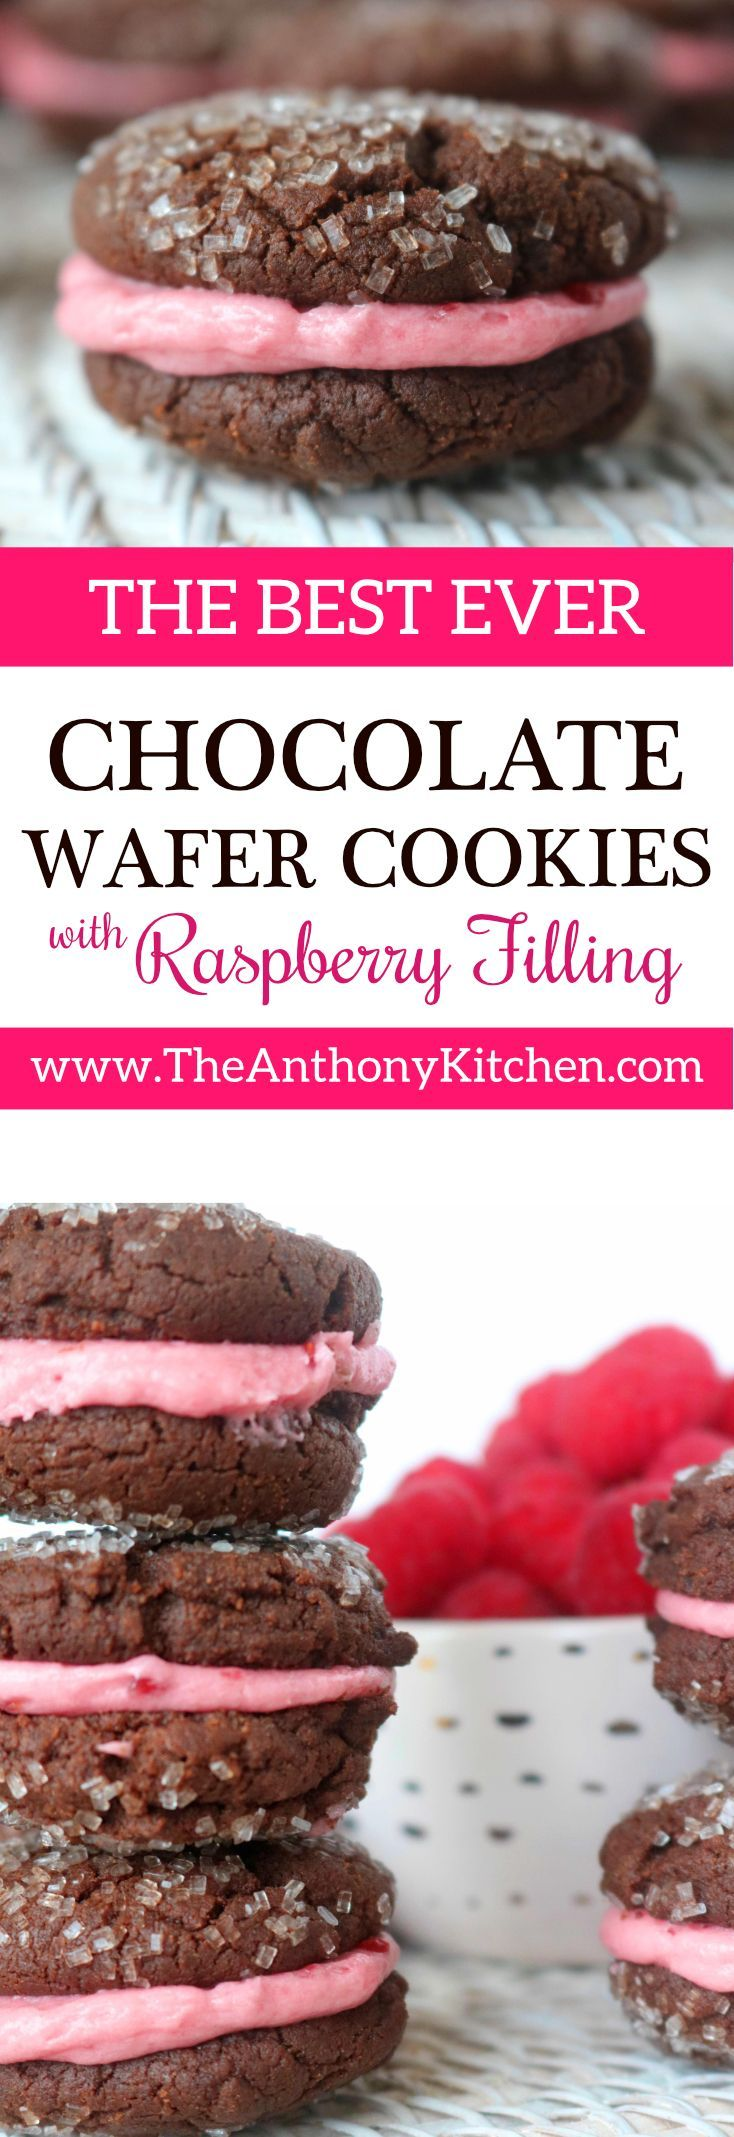 Chocolate Valentines Cookie Recipe | A homemade chocolate sandwich cookie with easy raspberry icing | #homemadevalentinescookies #chocolatesandwichcookie #valentinestreat